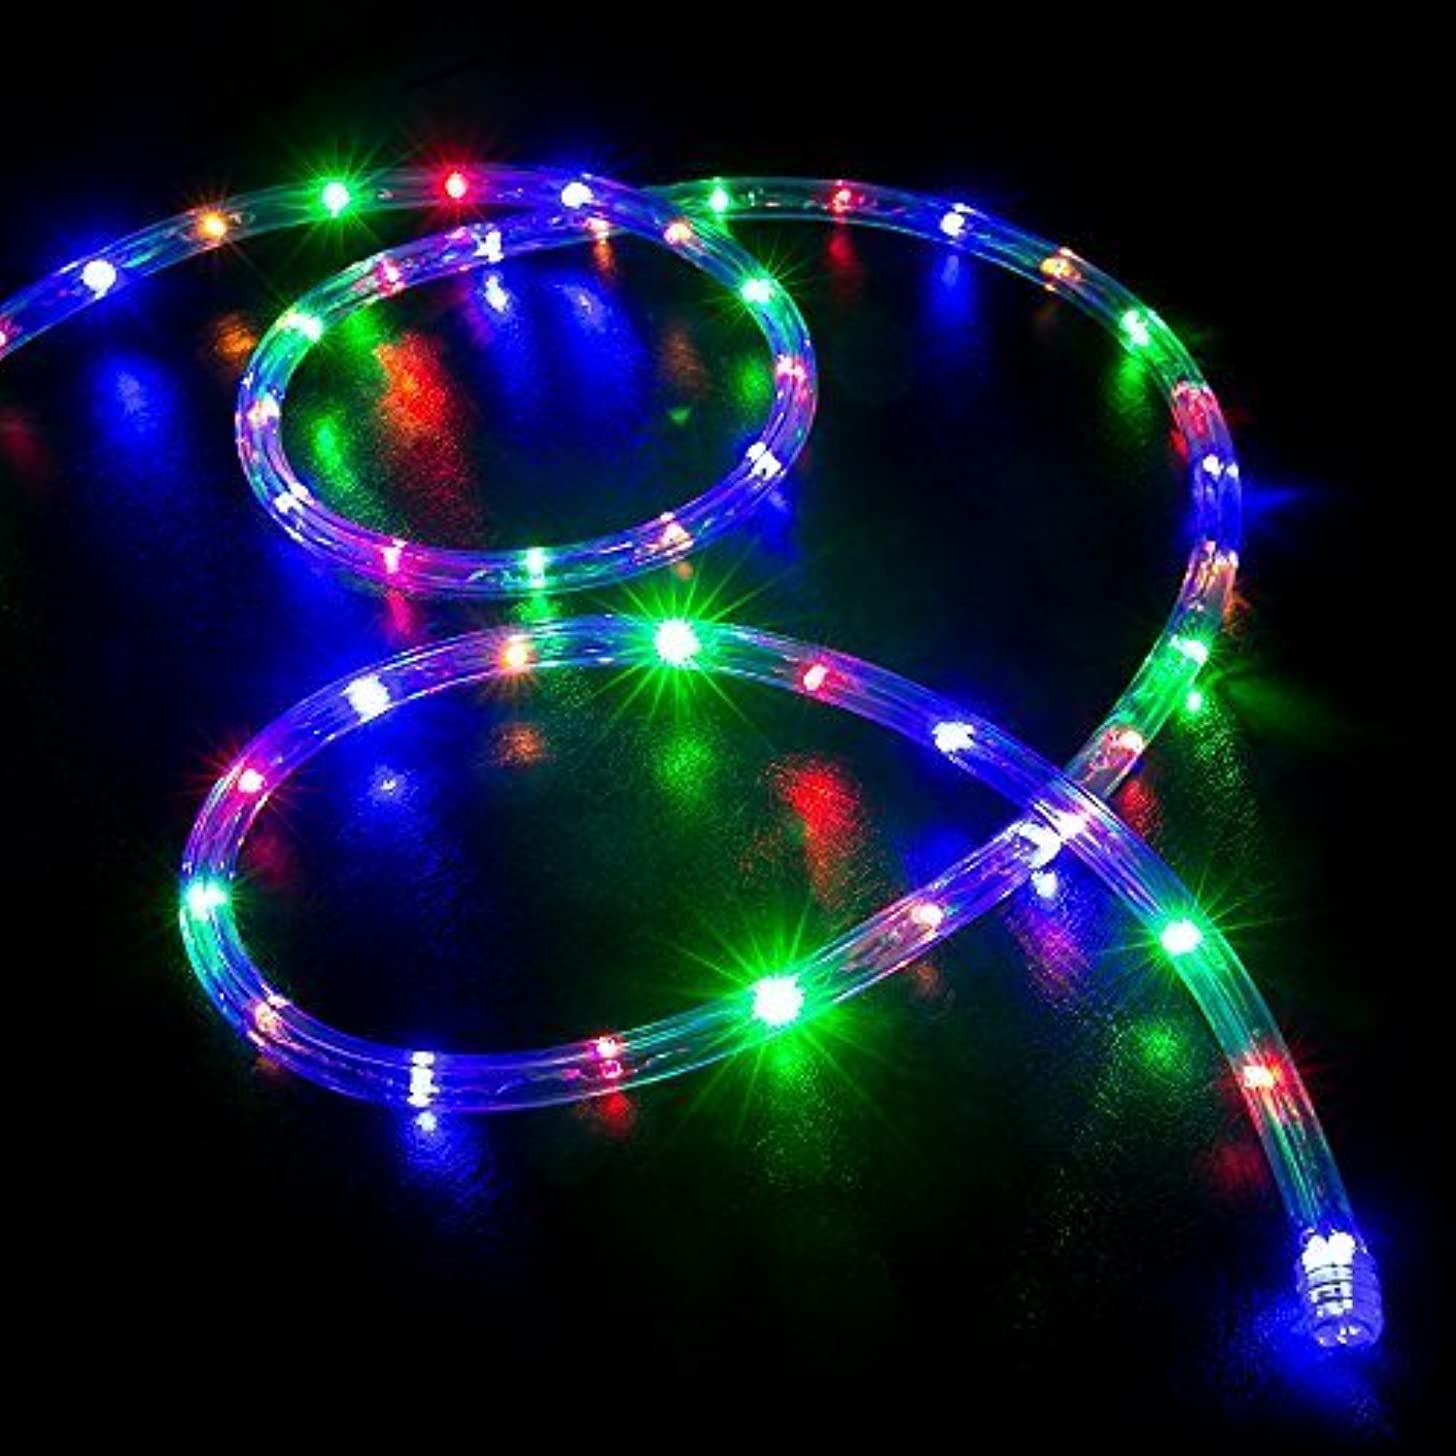 WYZworks 300' feet Multi-RGB LED Rope Lights - Flexible 2 Wire Accent Holiday Christmas Party Decoration Lighting | UL Certified